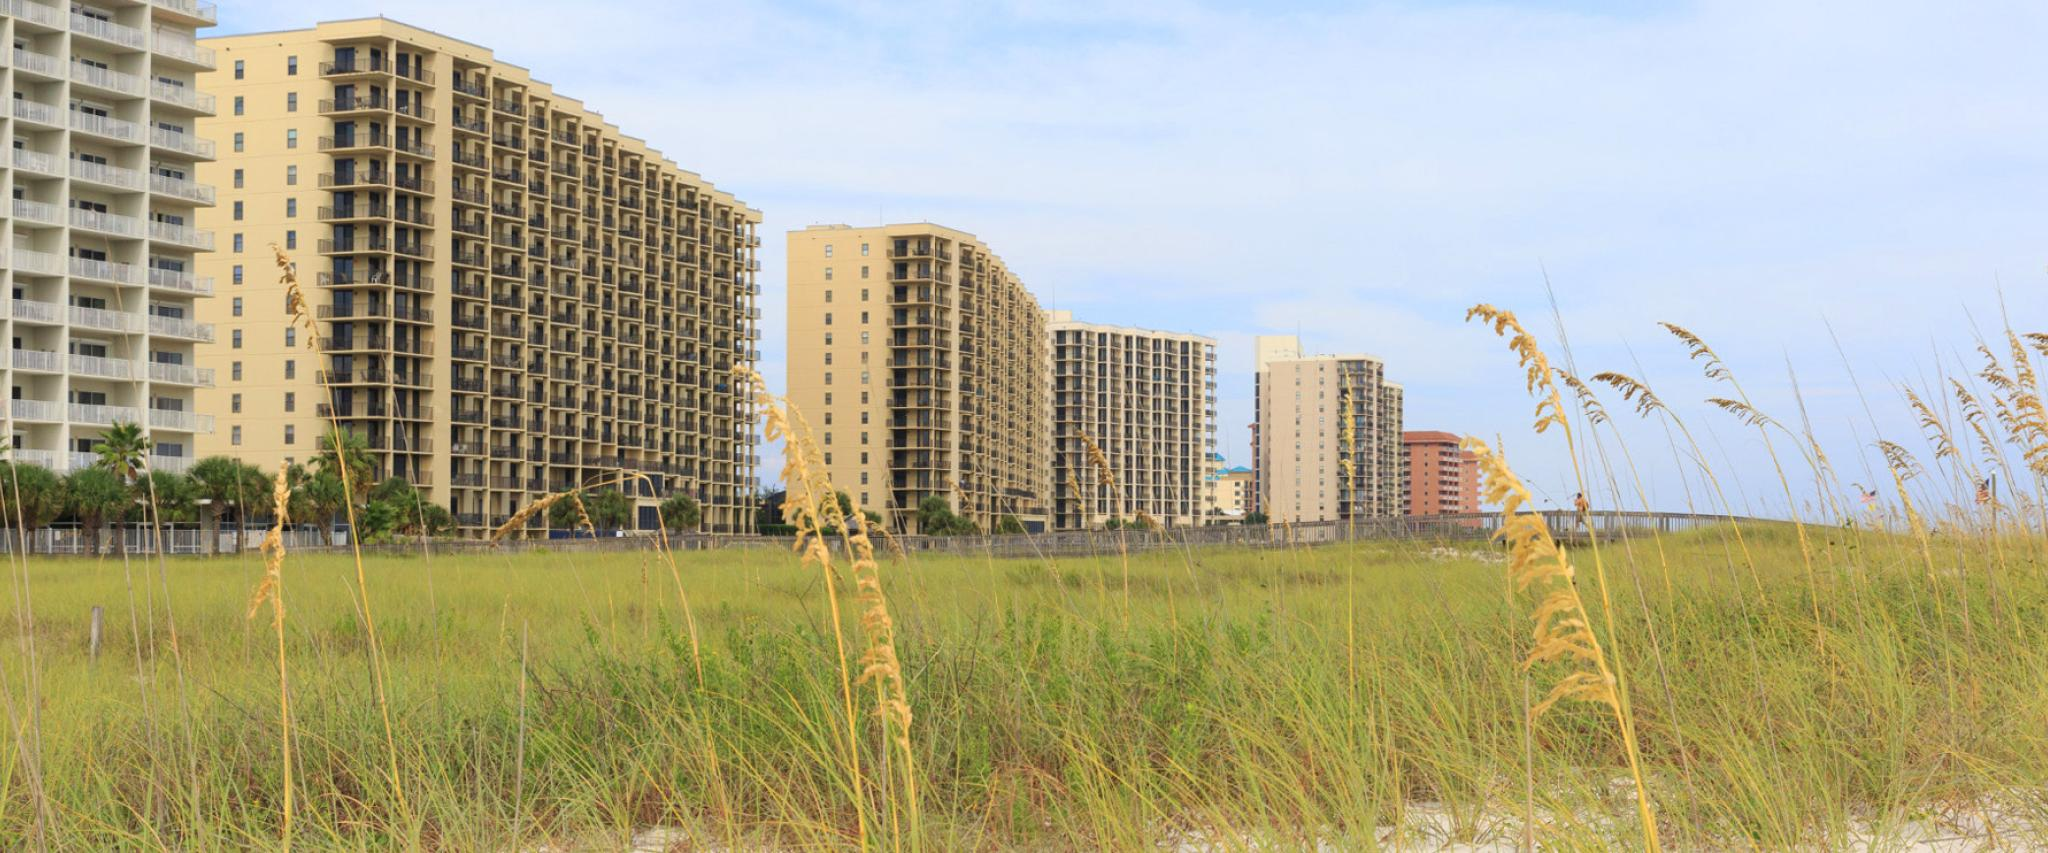 Condos on Alabama's Beaches